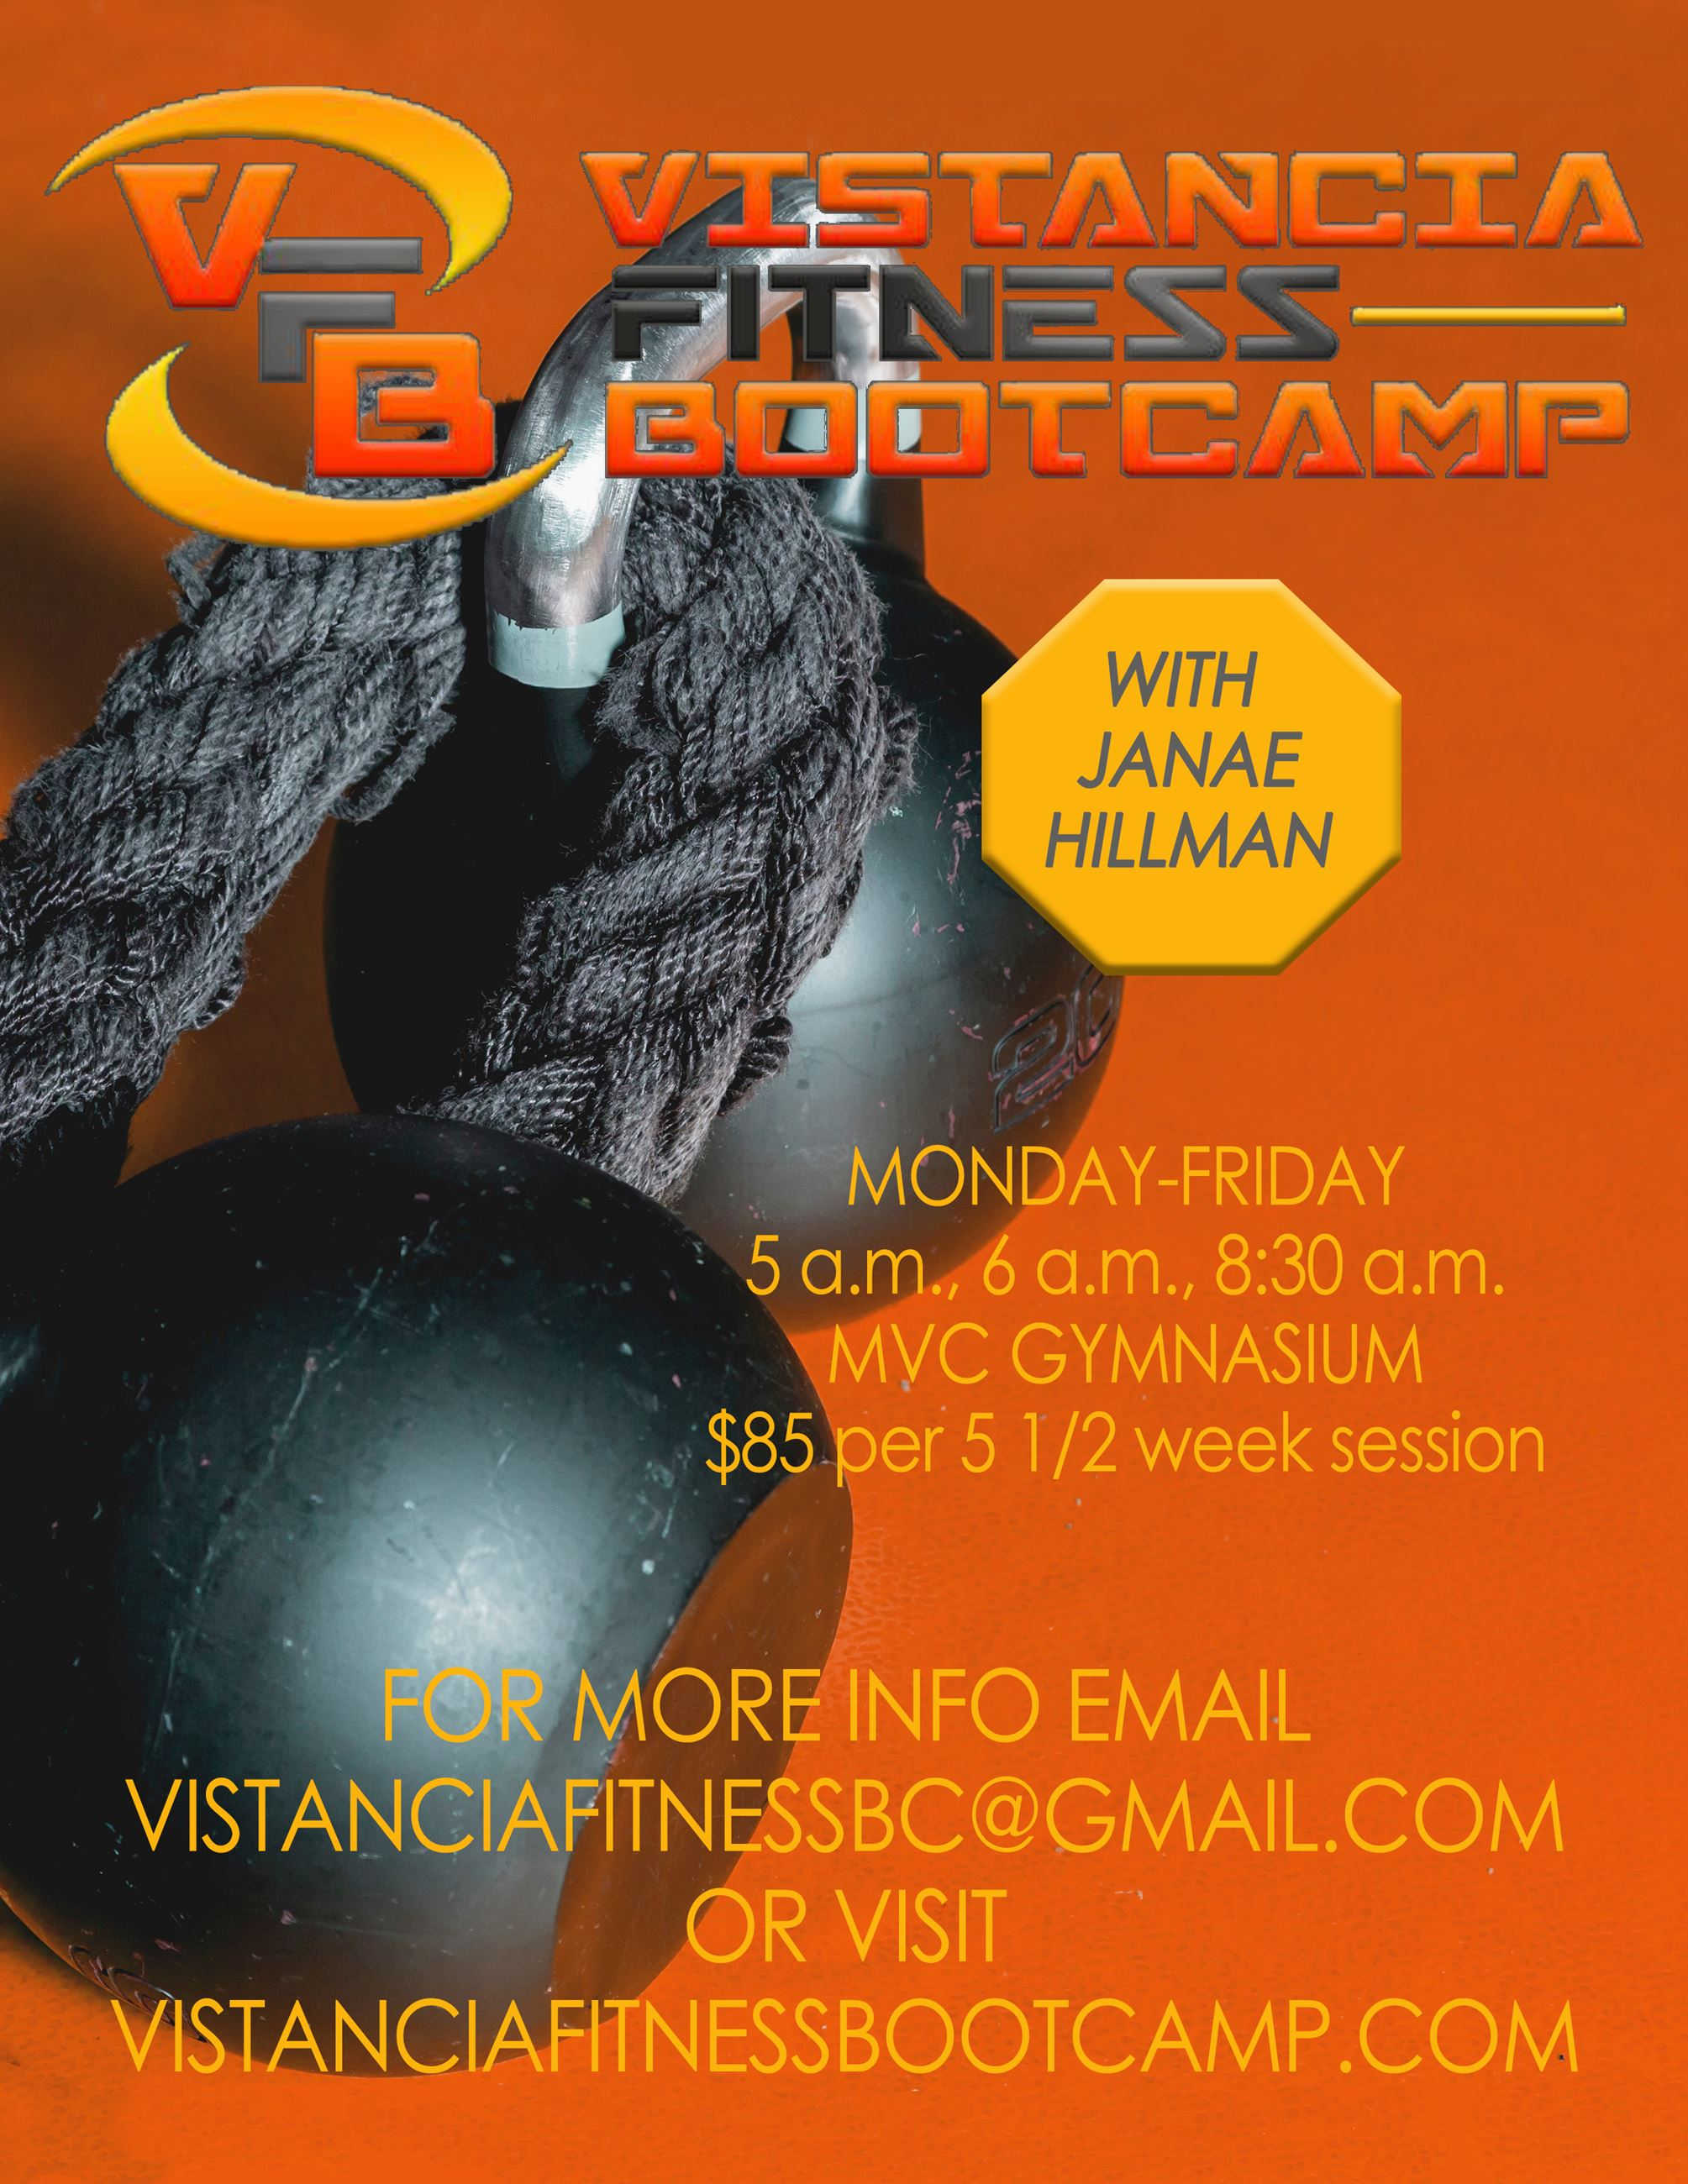 Vistancia Fitness Bootcamp